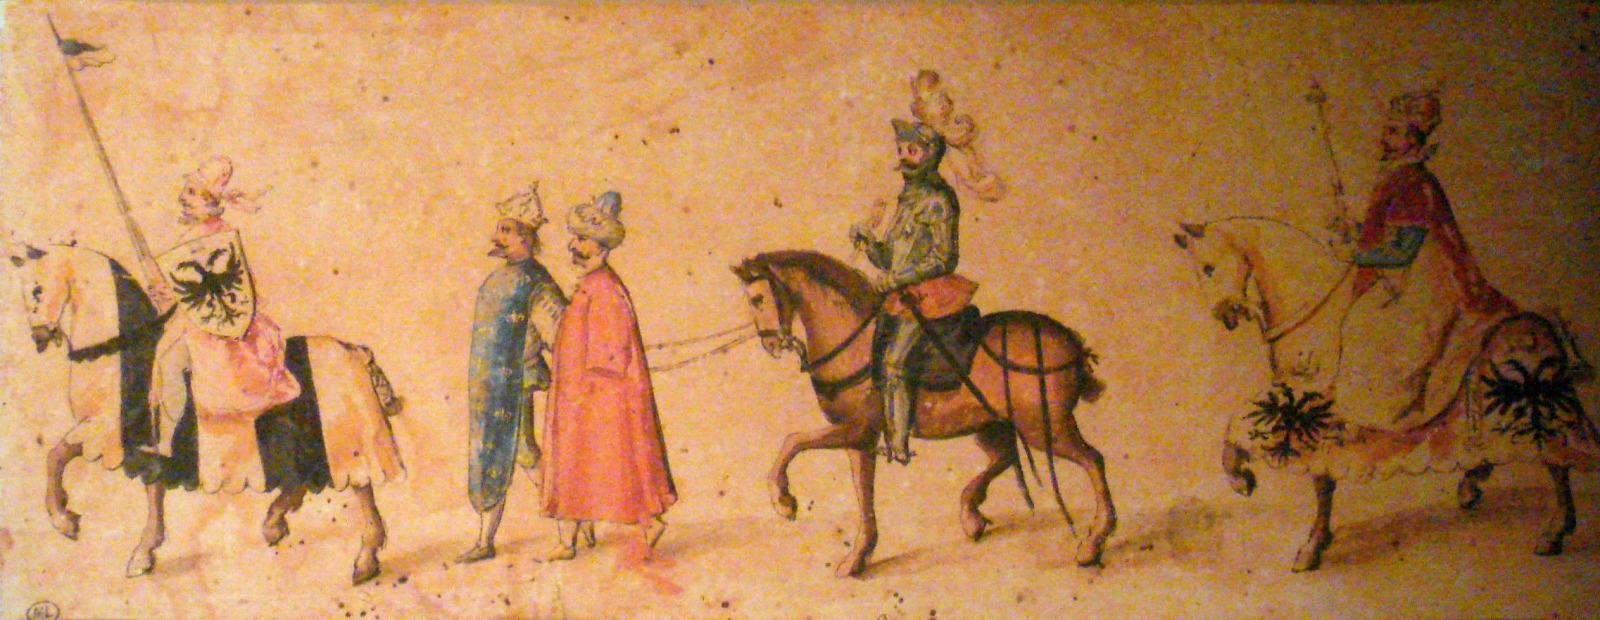 The_Emperor_conducting_the_king_of_France_and_the_Sultan_as_captives_bound_together_Early_17th_century_charicature